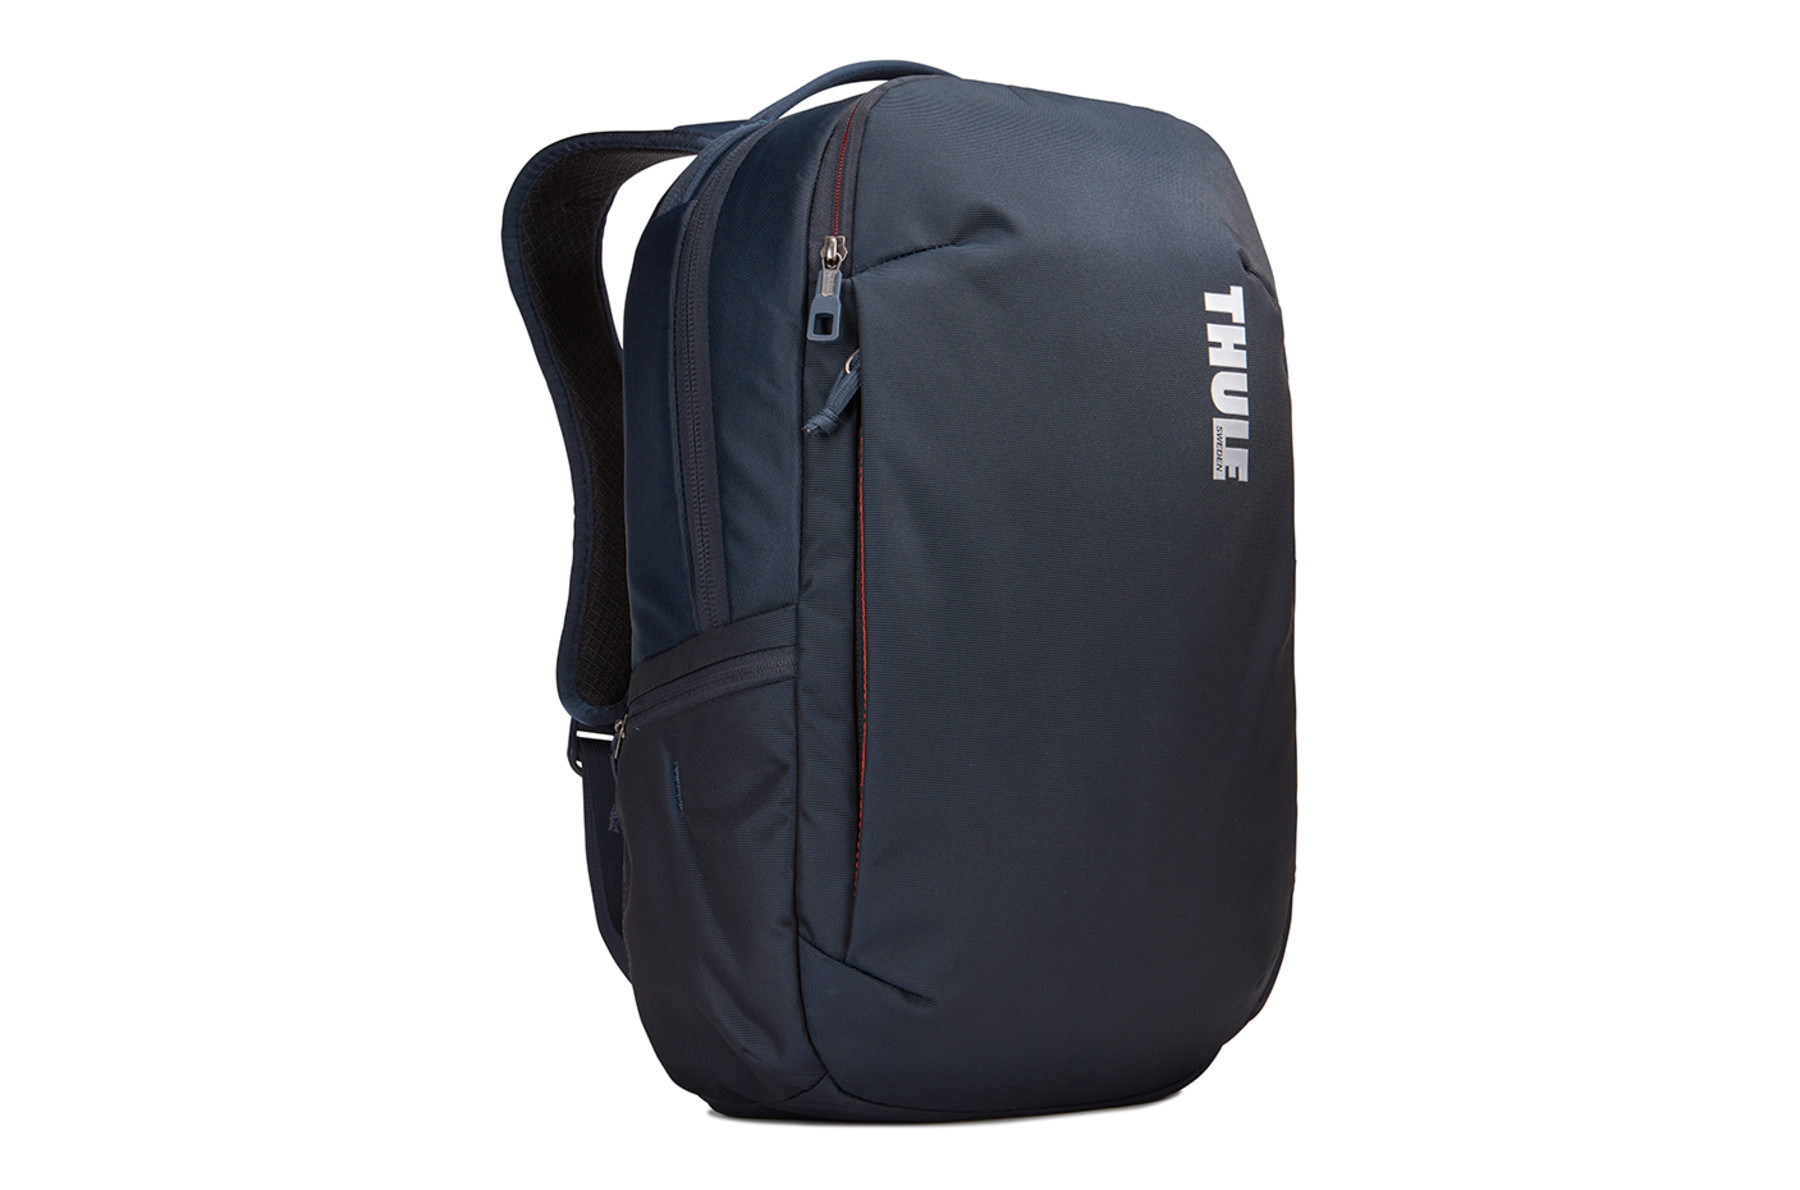 Thule_Subterra_Backpack_23L